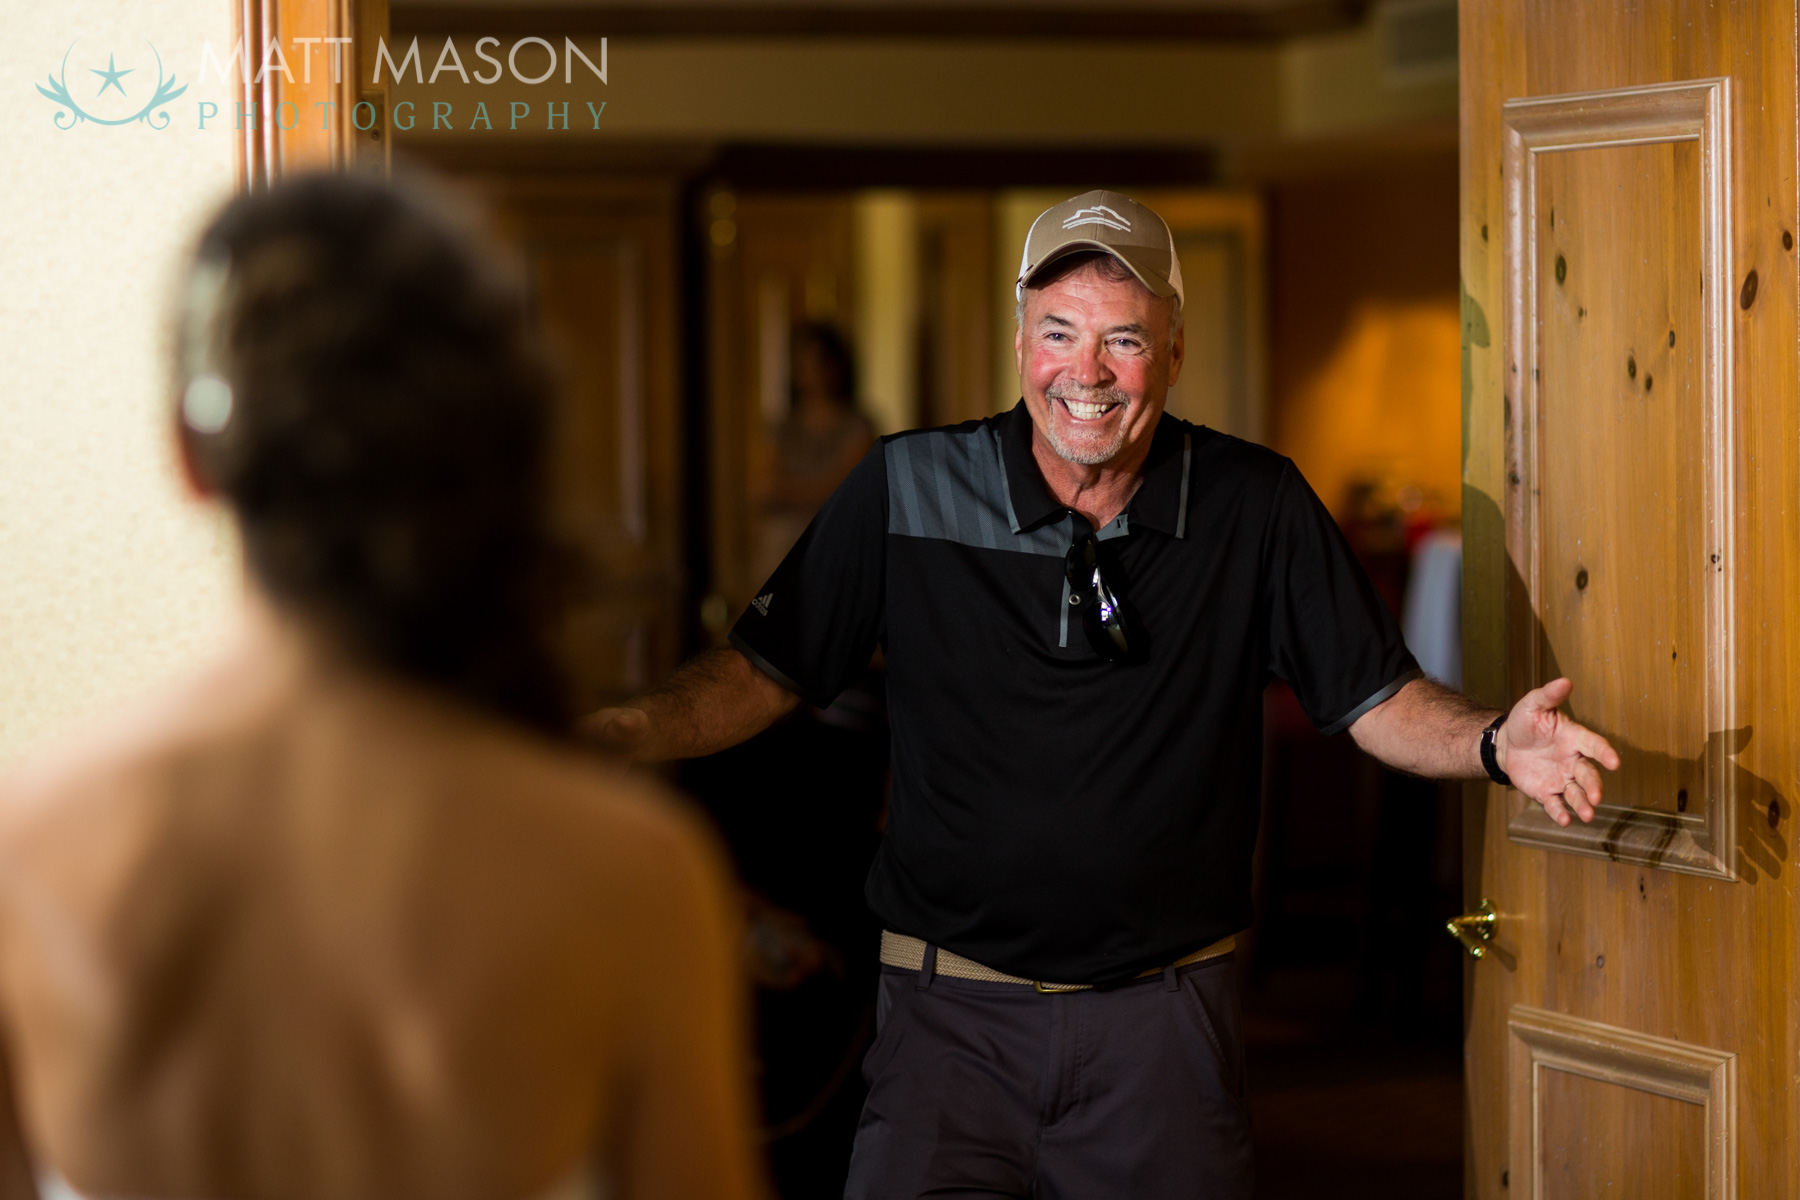 Matt-Mason-Photography-Father-Daughter-MattMasonPhotography-8.jpg